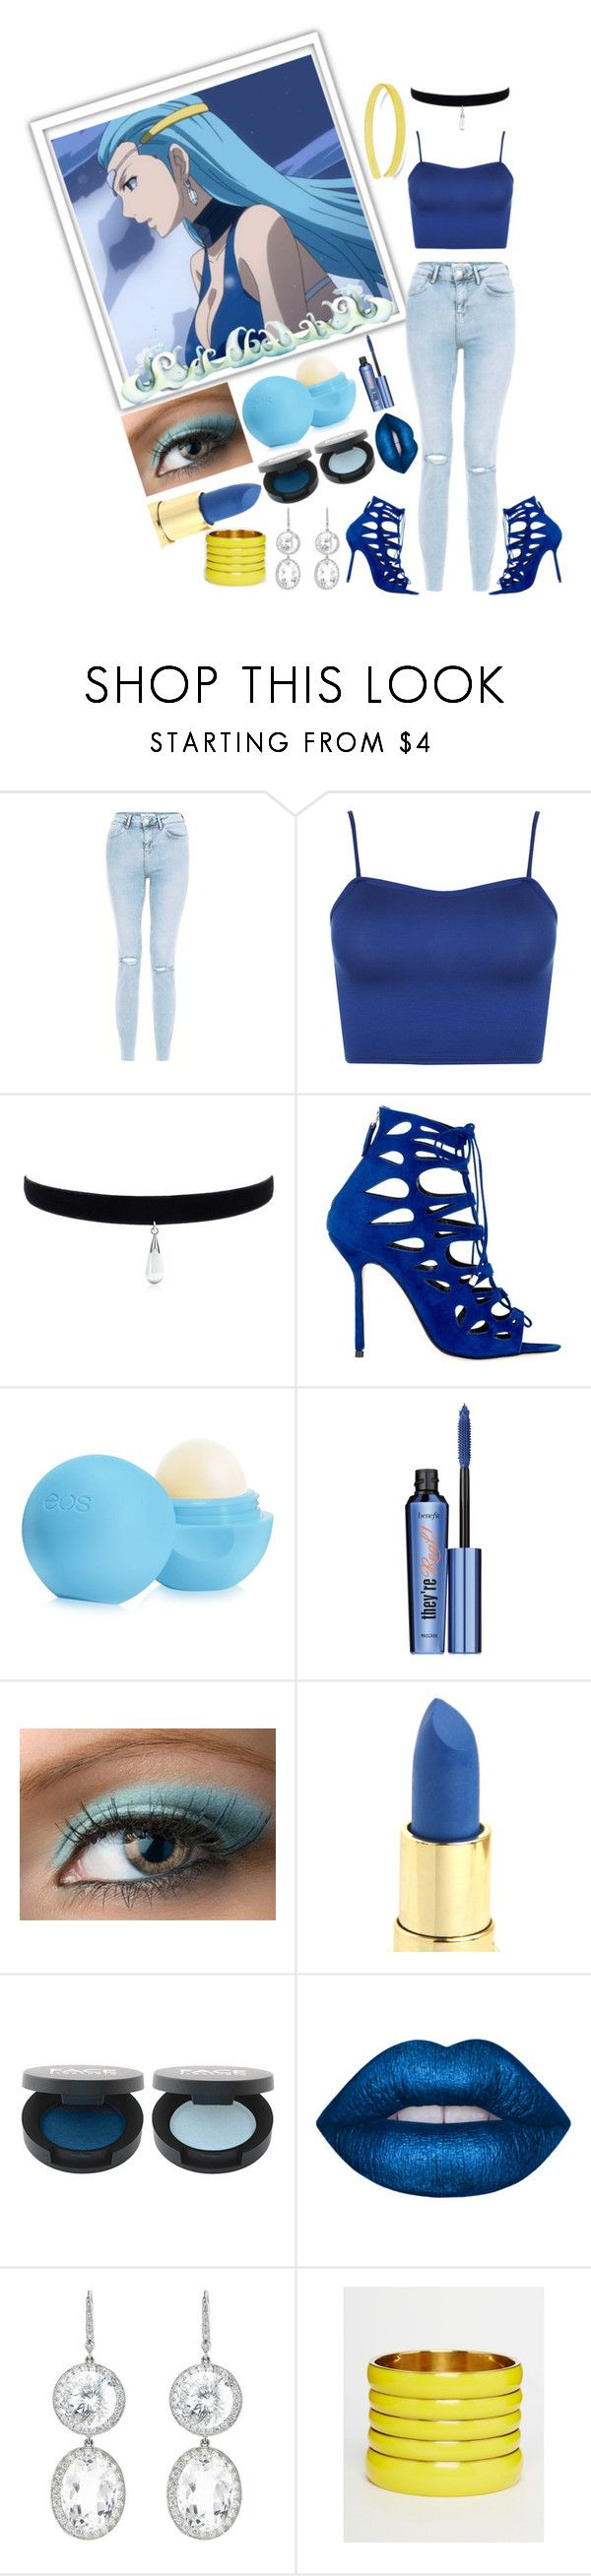 """""""Aquarius Fairy tail / Lucy celestial a spirit / Zodiac"""" by stormtrooper117 ❤ liked on Polyvore featuring WearAll, Marskinryyppy, Eos, Benefit, FACE Stockholm, Lime Crime, Andrea Fohrman, ASOS and France Luxe"""